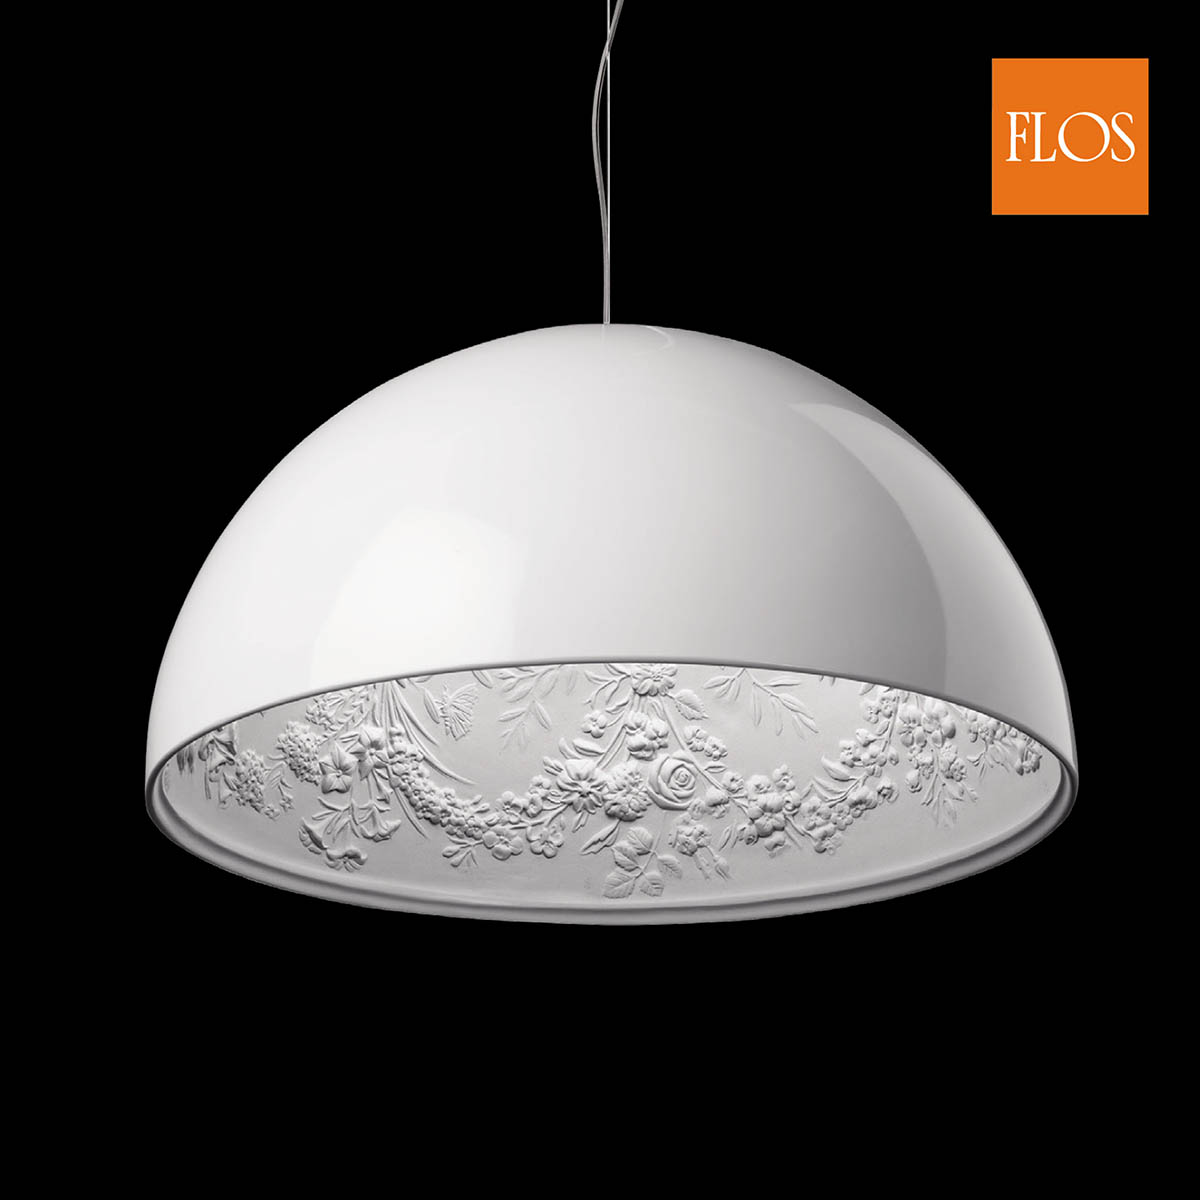 flos lighting nyc. Flos Lighting Nyc